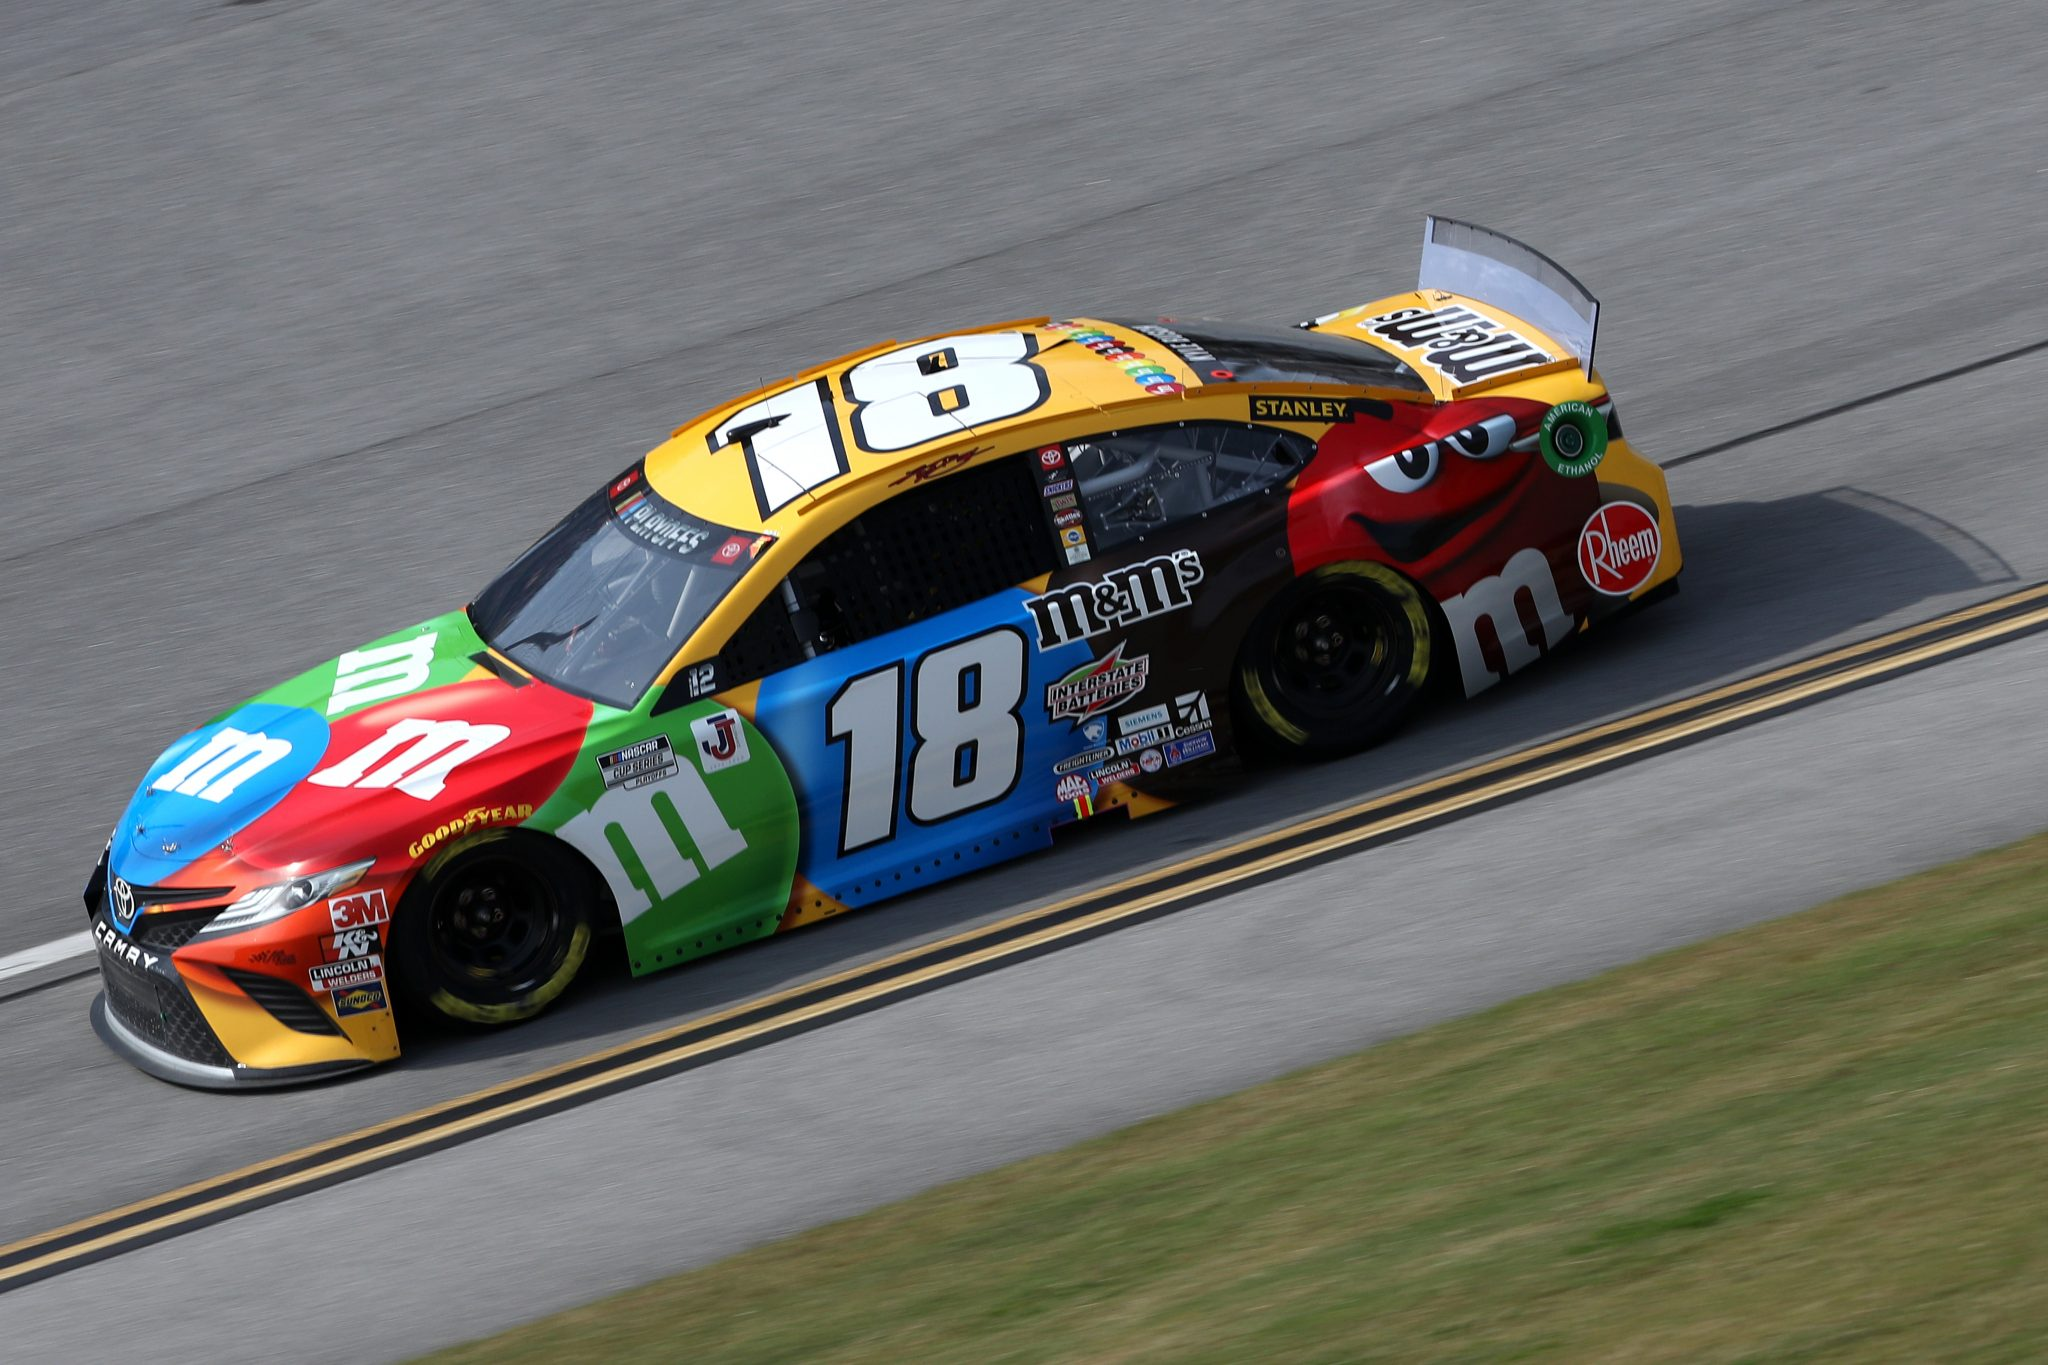 TALLADEGA, ALABAMA - OCTOBER 04: Kyle Busch, driver of the #18 M&M's Toyota, drives during the NASCAR Cup Series YellaWood 500 at Talladega Superspeedway on October 04, 2020 in Talladega, Alabama. (Photo by Chris Graythen/Getty Images) | Getty Images